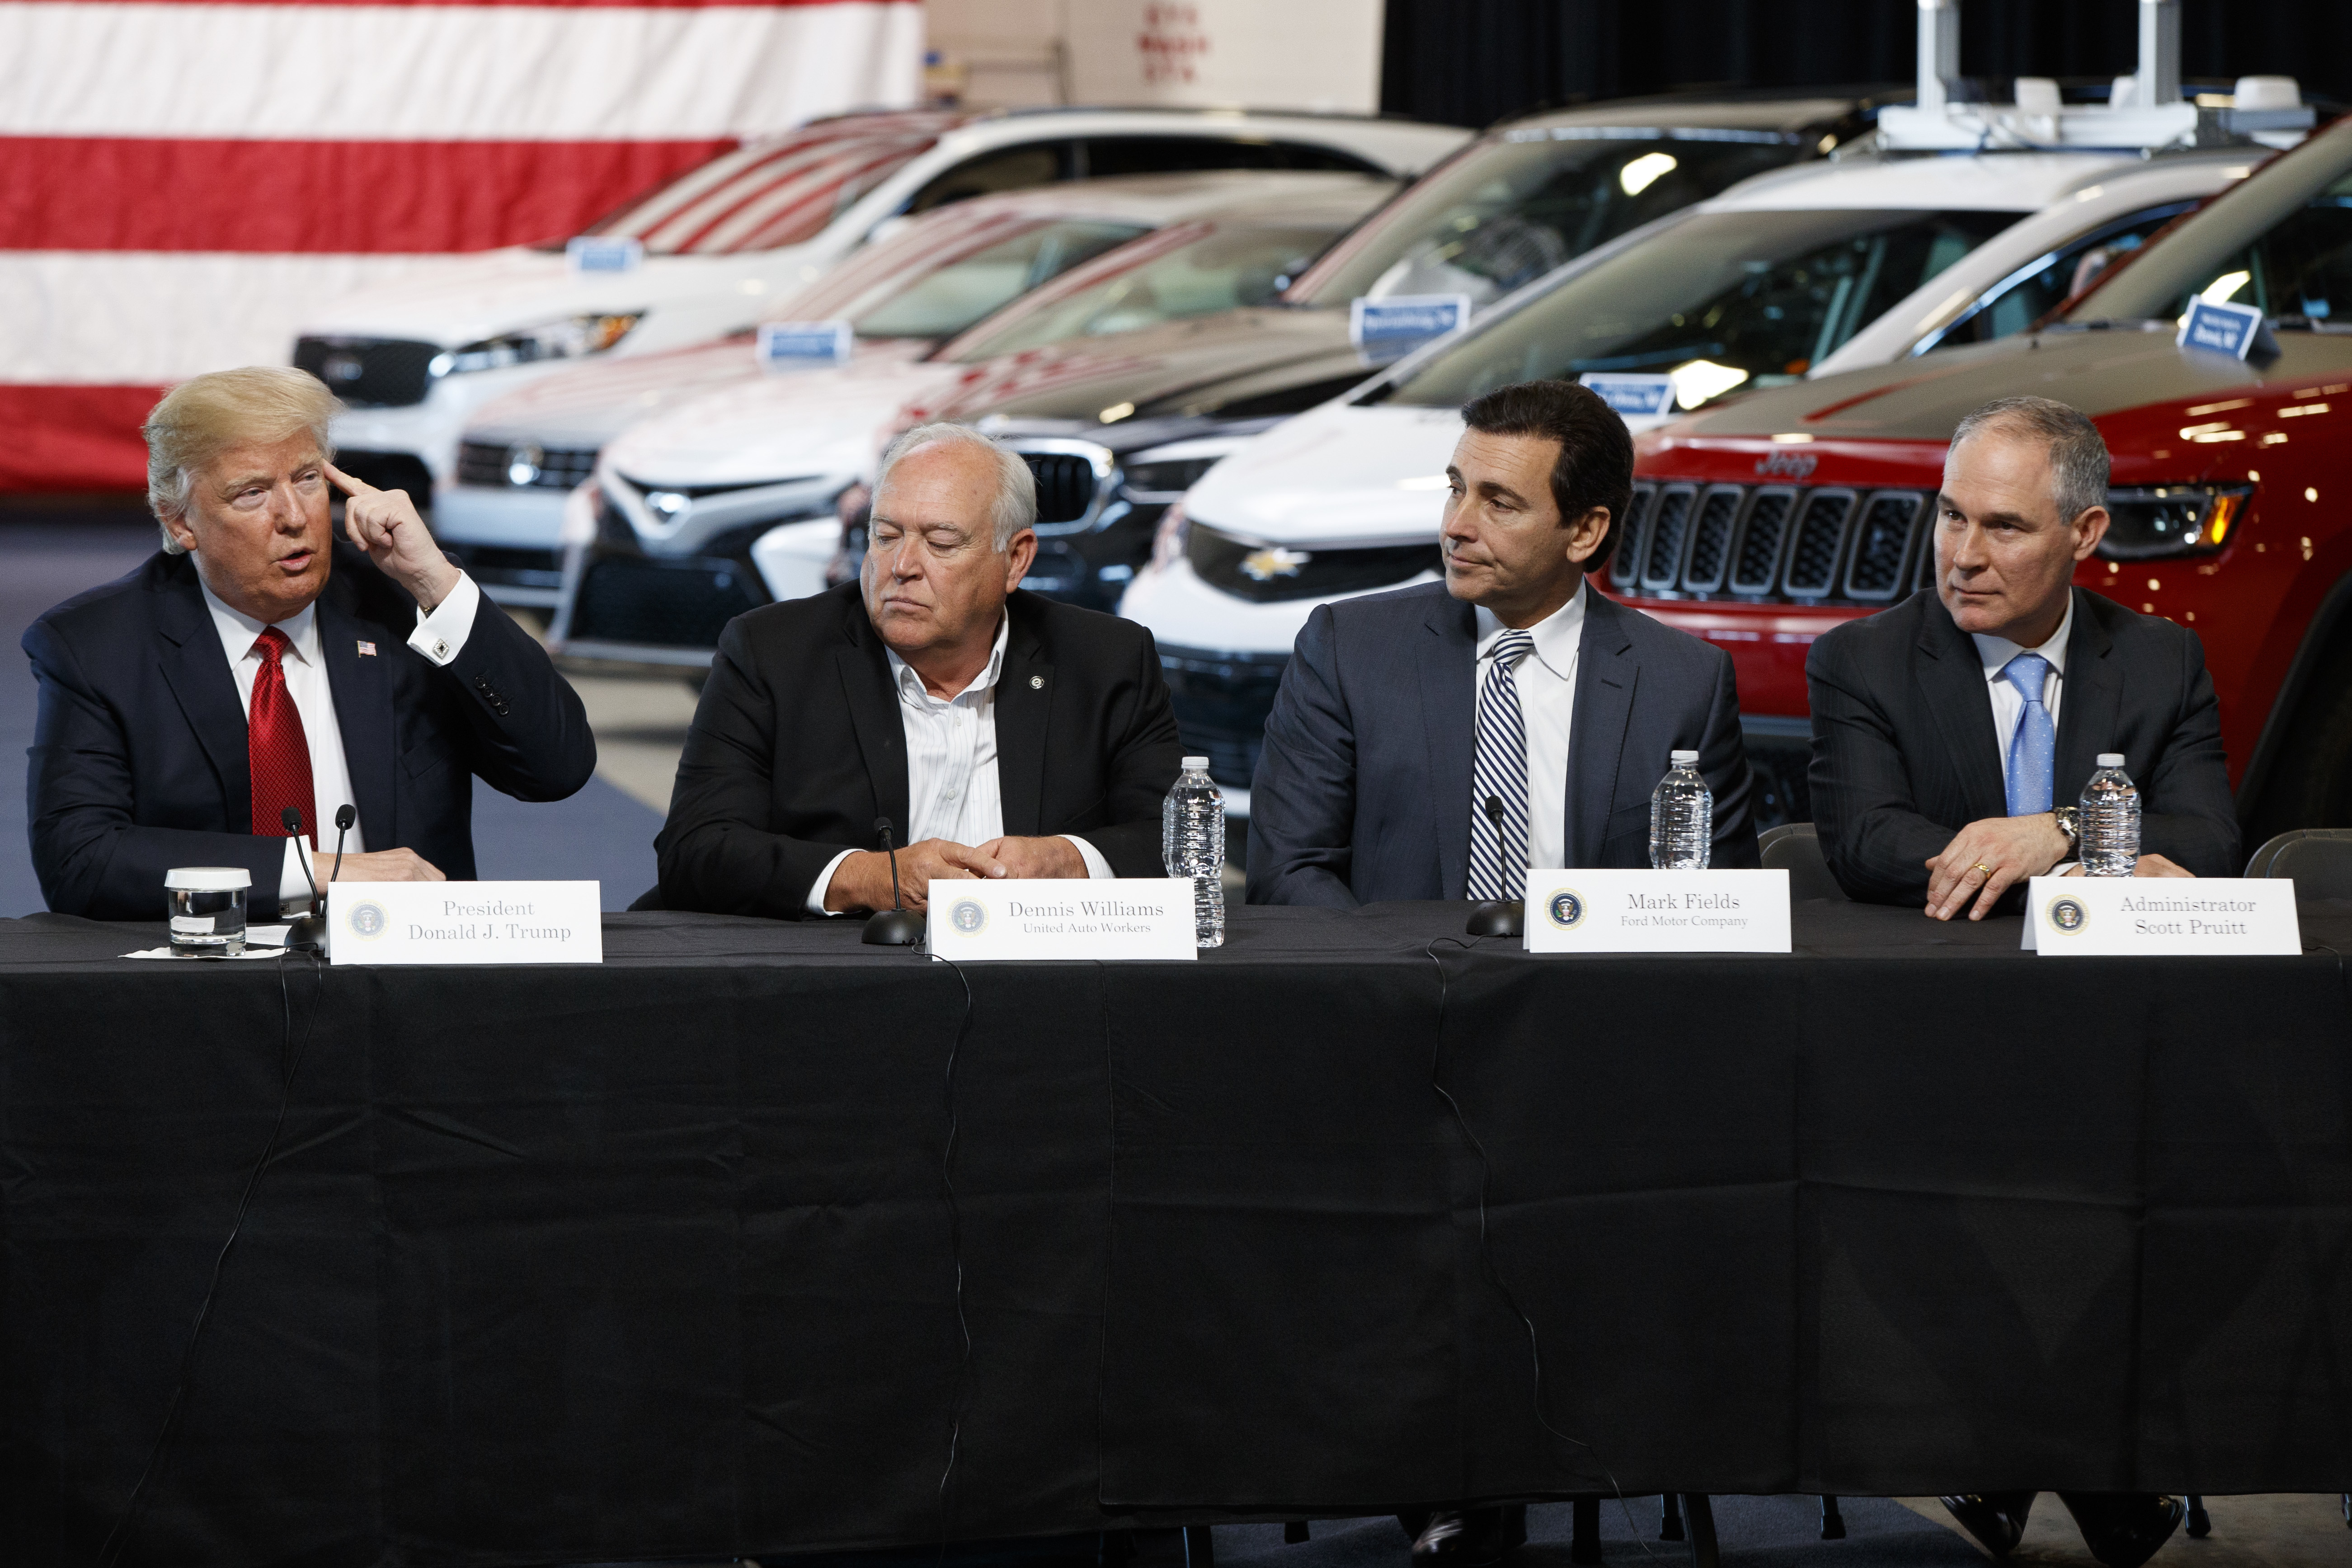 Trump President Donald Trump speaks during a roundtable at the American Center of Mobility, Wednesday, March 15, 2017, in Ypsilanti Township, Mich. From left are, Trump, UAW president Dennis Williams, Ford CEO Mark Fields, and EPA administrator Scott Pruitt. (AP Photo/Evan Vucci)